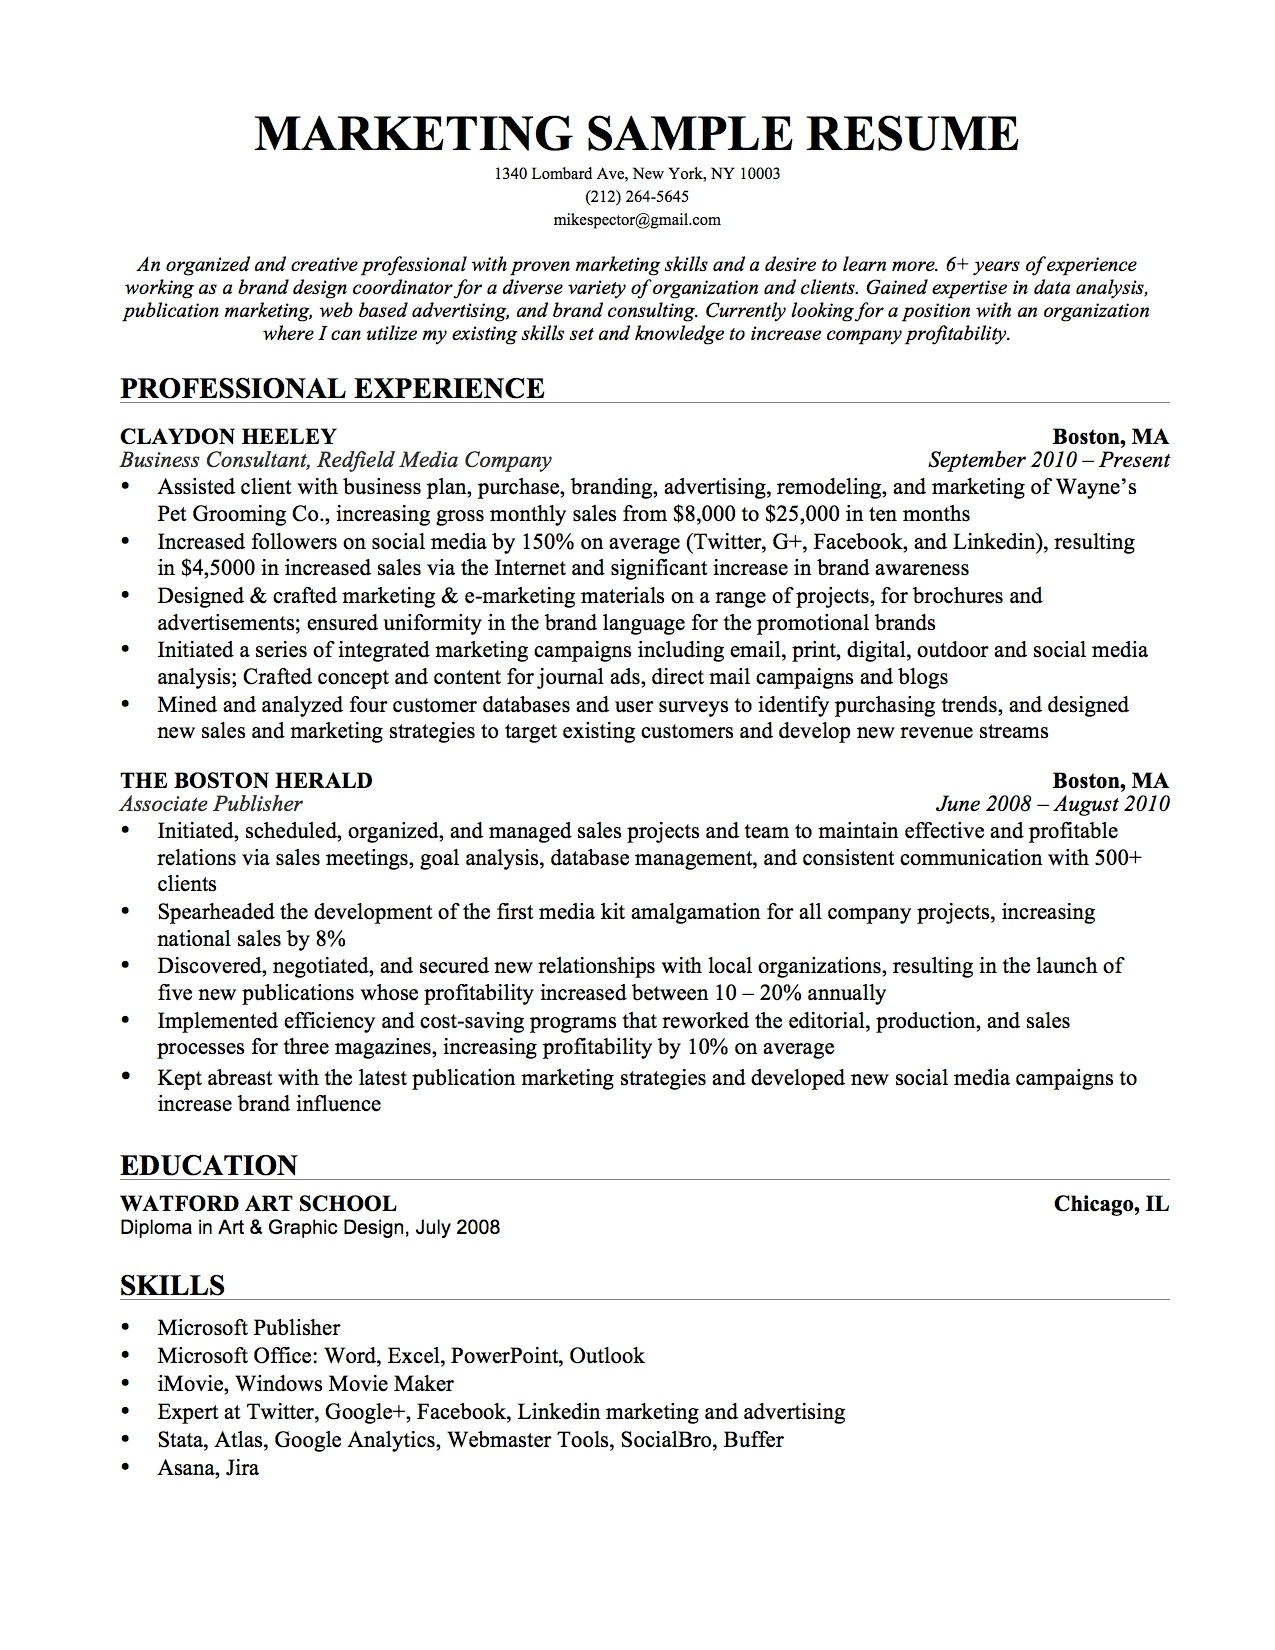 sample resume for financial administrative assistant resume builder sample resume for financial administrative assistant financial administrative assistant resume sample best sample marketing resume examples